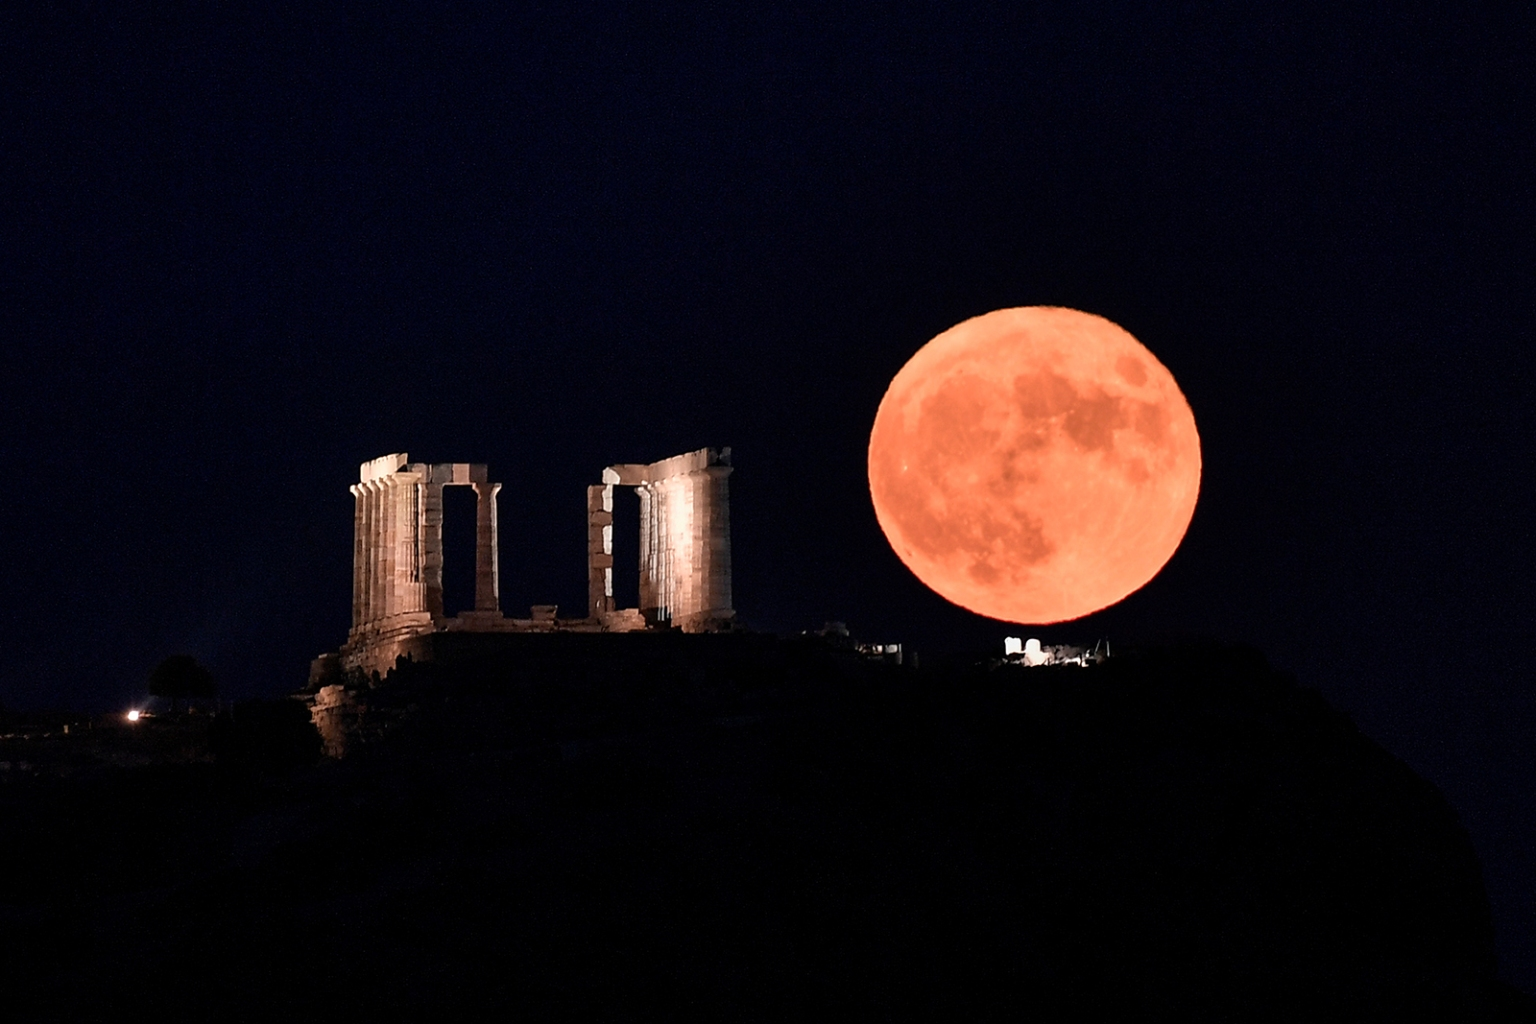 The full moon rises next to the Poseidon Temple at the Cape of Sounion, south of Athens, on Aug. 15. LOUISA GOULIAMAKI/AFP/Getty Images